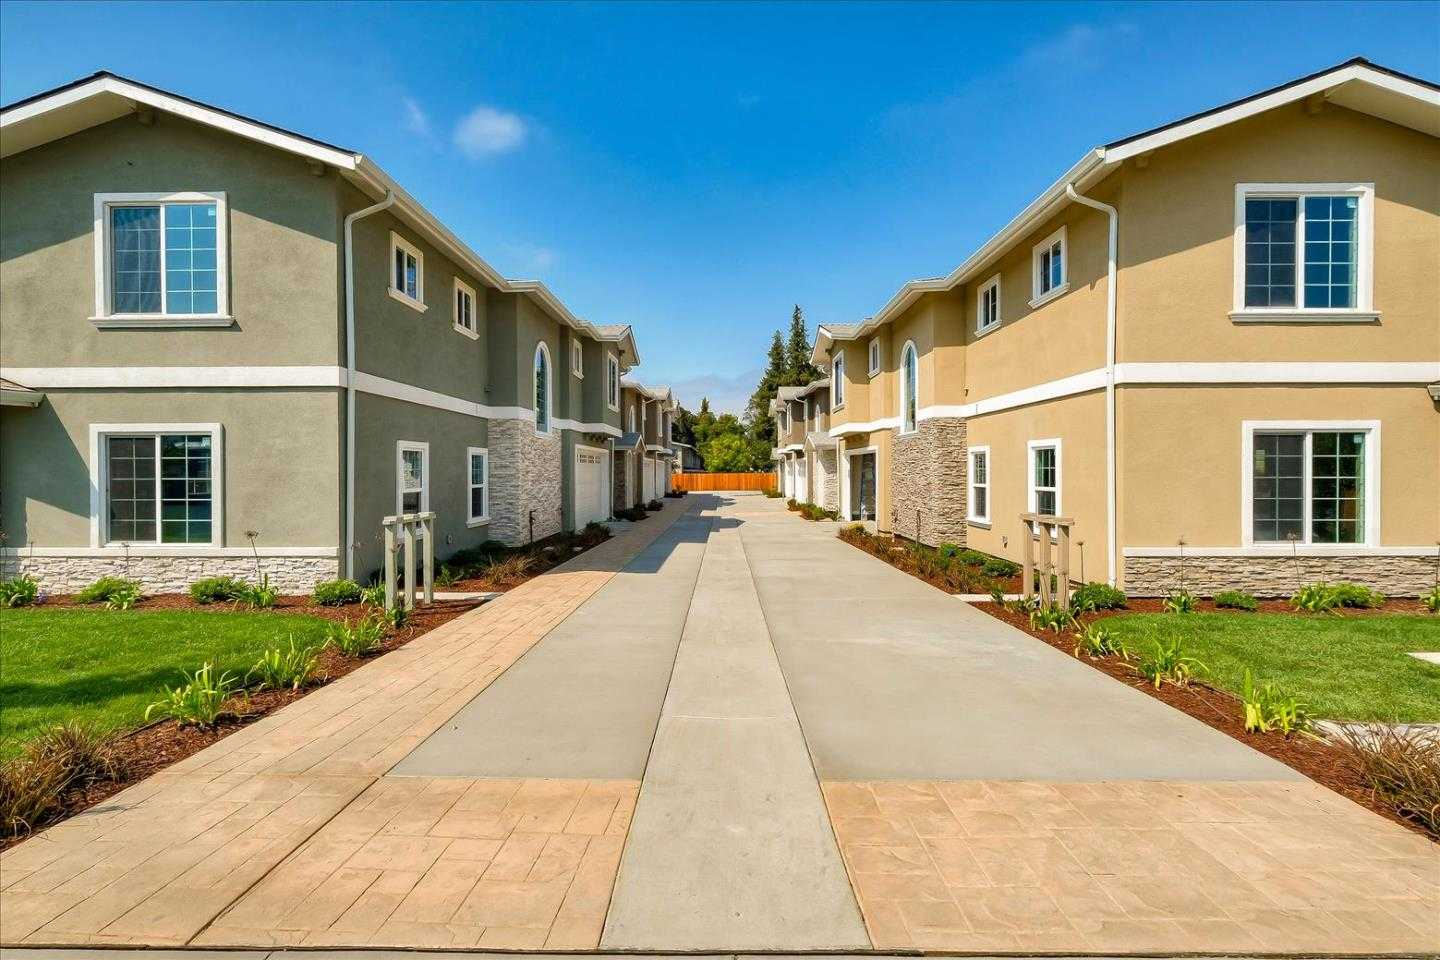 $850,000 - 3Br/3Ba -  for Sale in Castro Valley